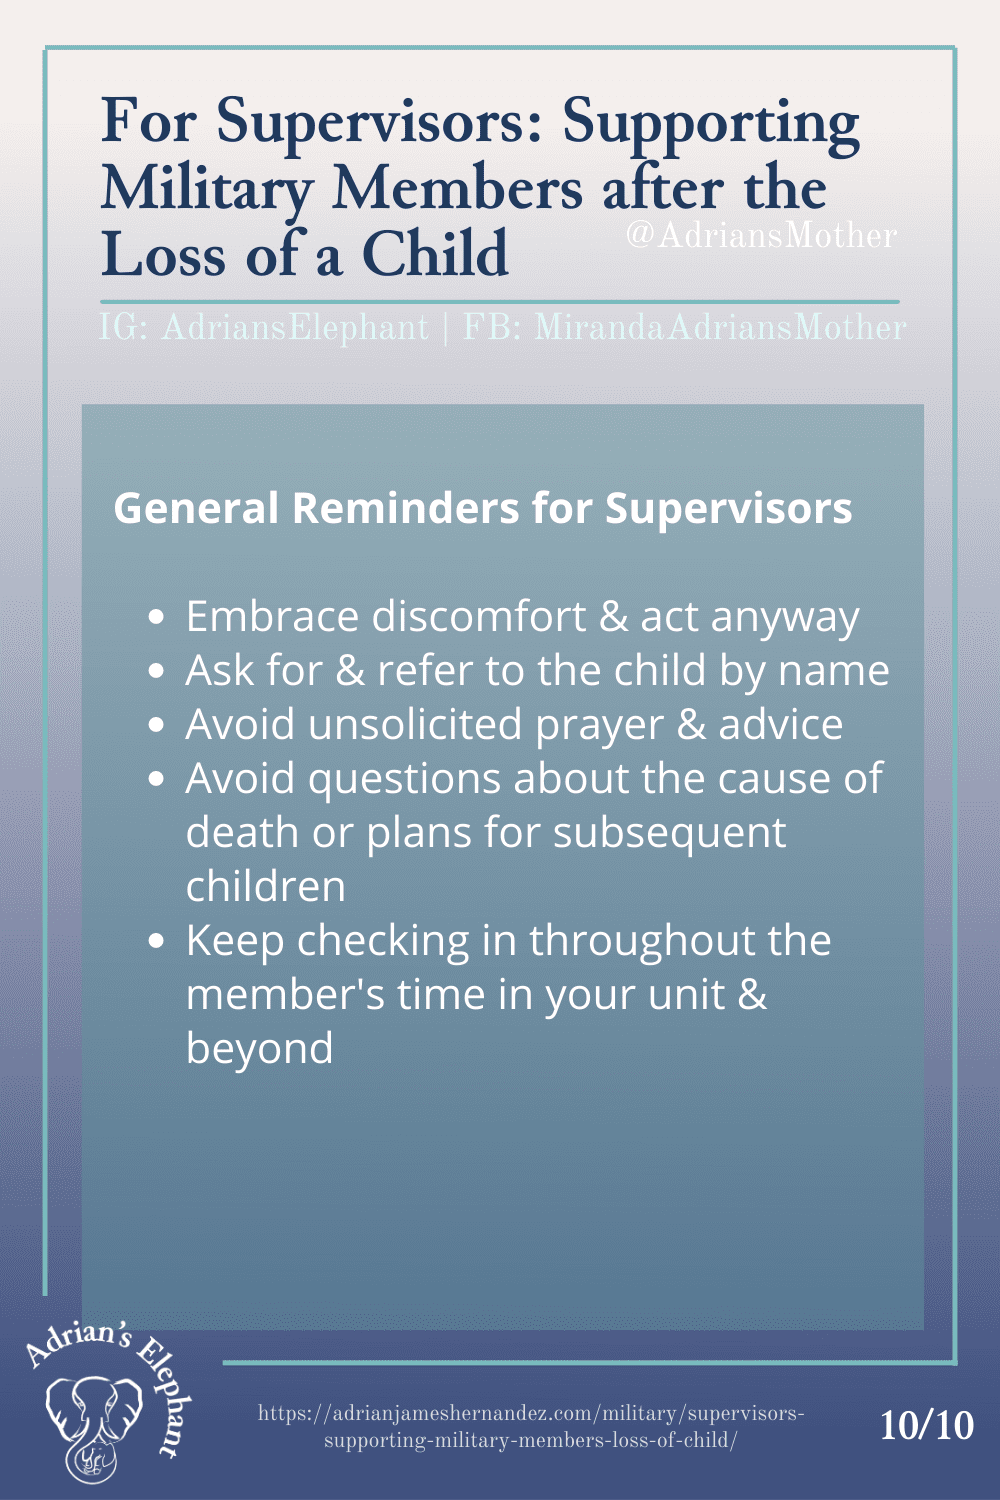 For Supervisors: Supporting Military Members after the Loss of a Child - General Reminders for Supervisors - Embrace discomfort & act anyway - Ask for & refer to the child by name - Avoid unsolicited prayer & advice - Avoid questions about the cause of death or plans for subsequent children - Keep checking in throughout the member's time in your unit & beyond (10/10)